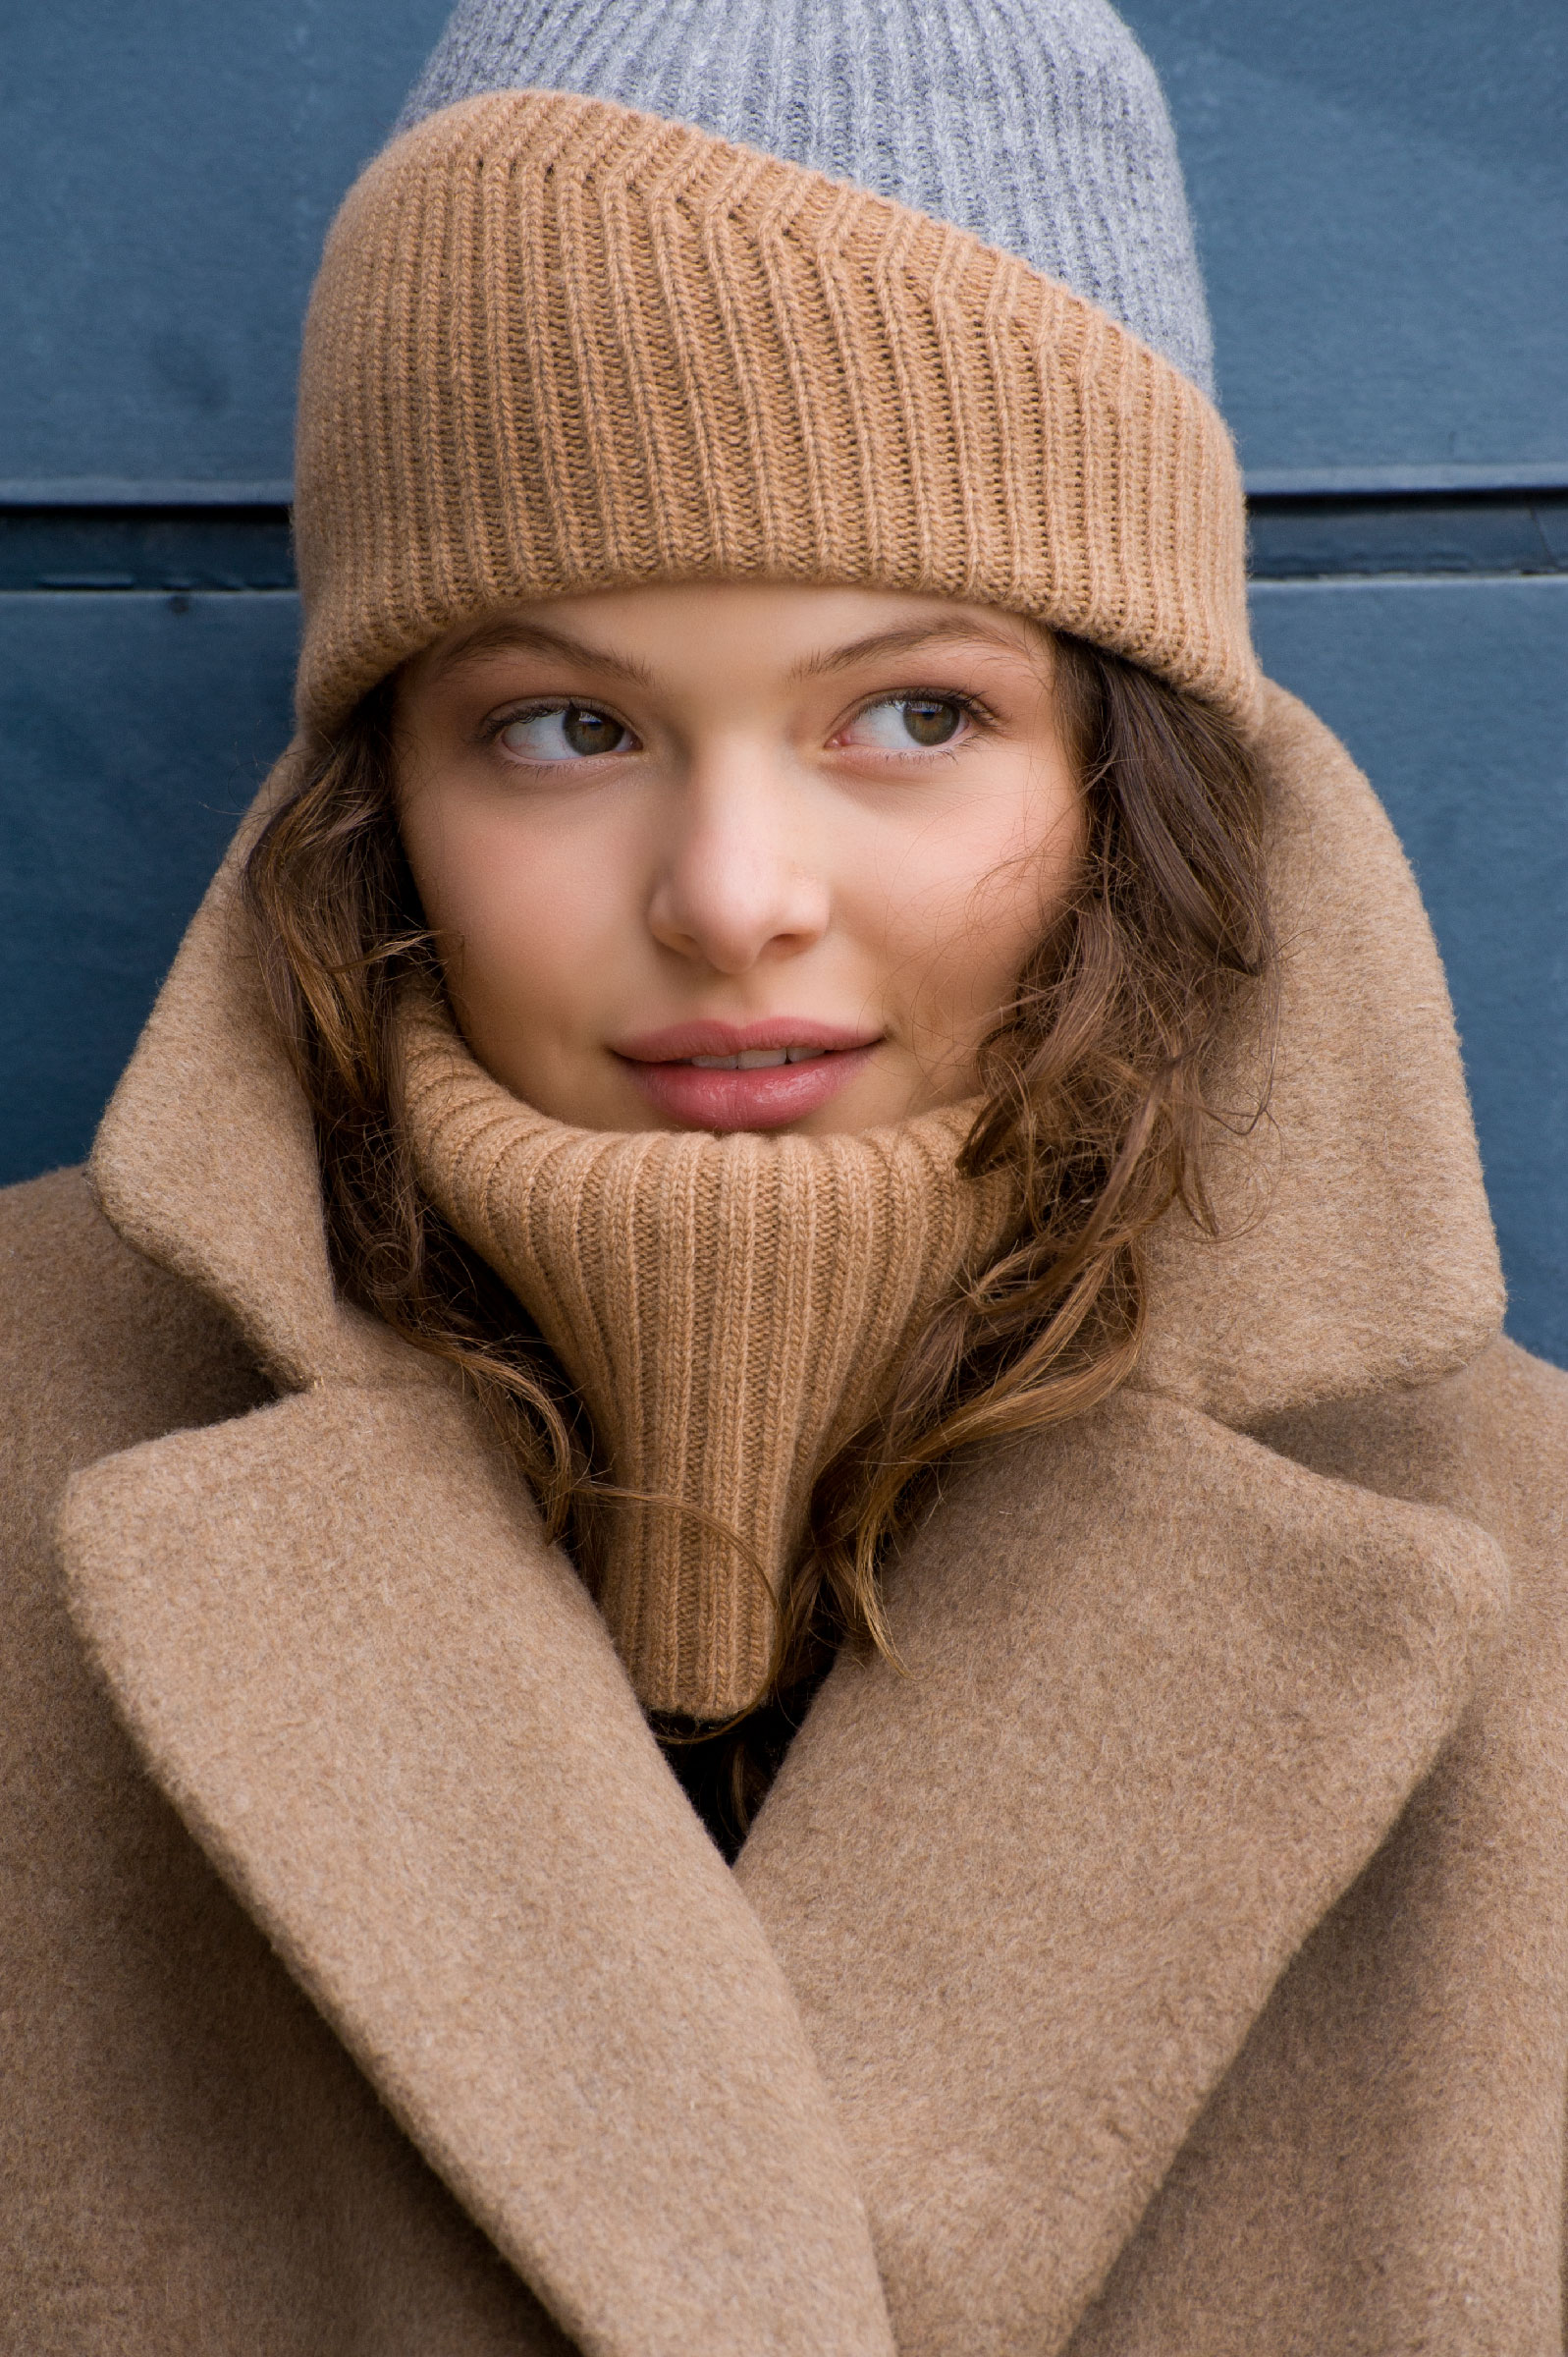 Reshaped beanie and neck-warmer